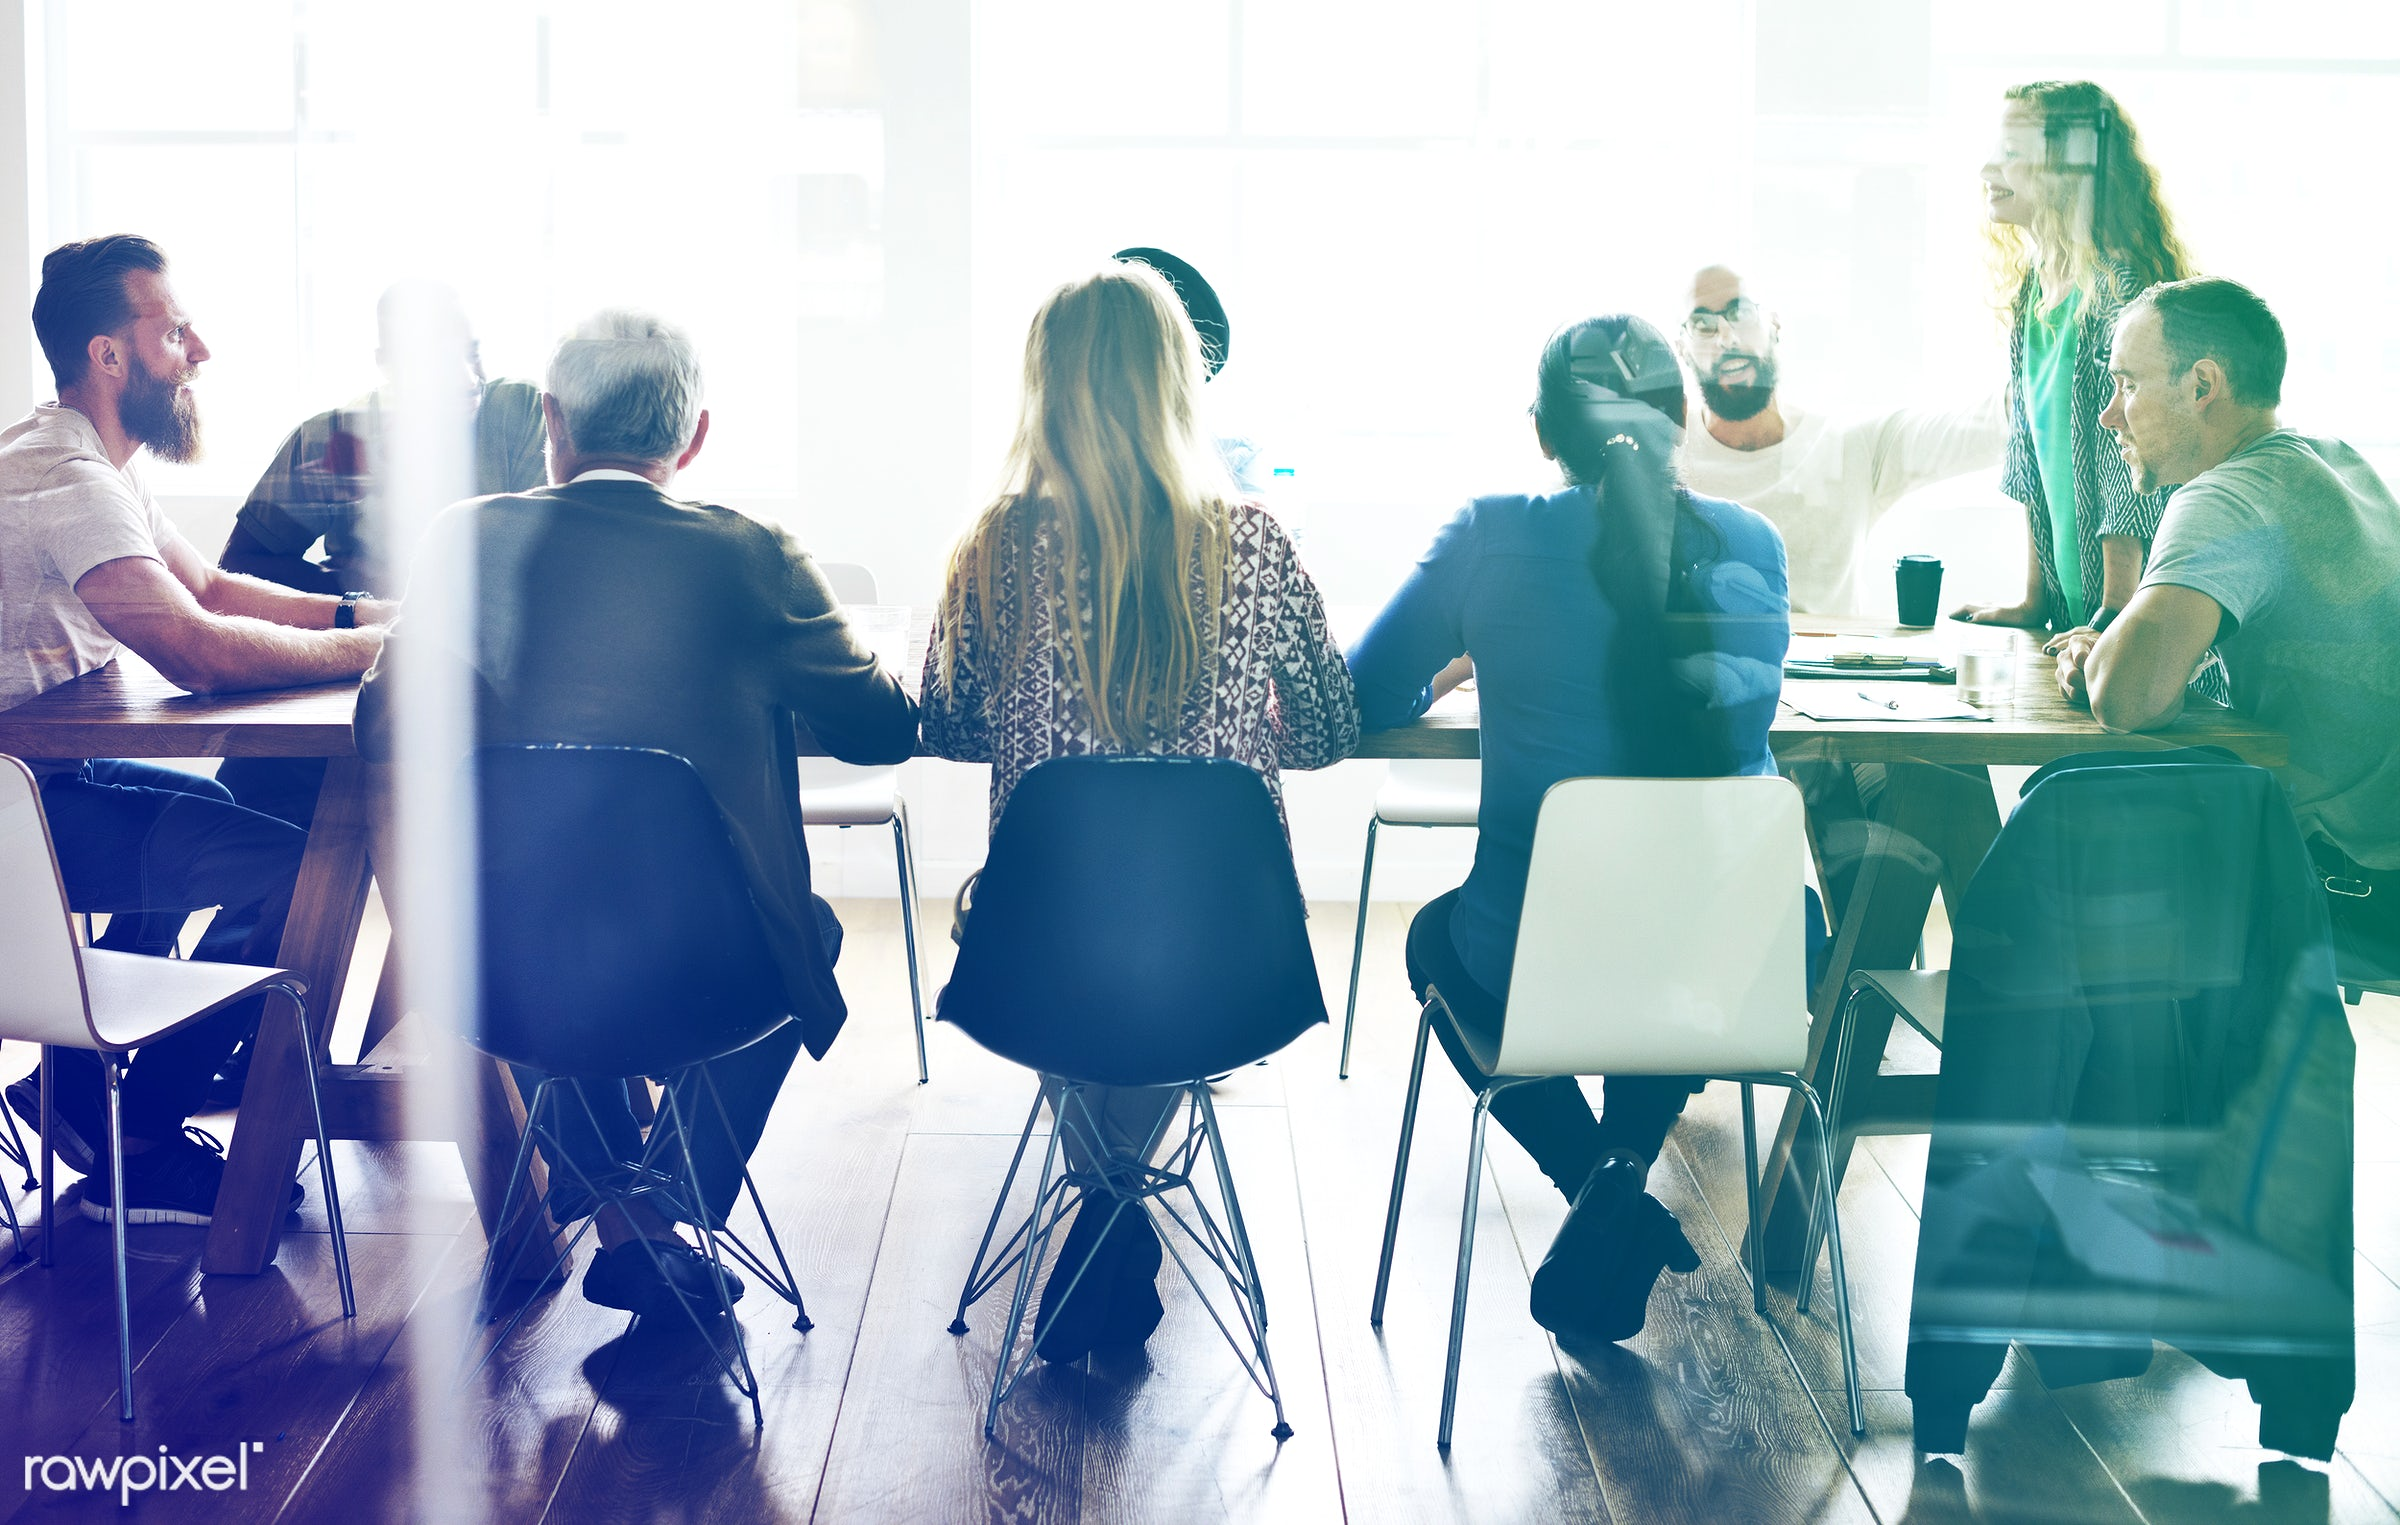 discussion, chairs, desks, people, together, business, casual clothing, teamwork, businesswomen, social, event, cooperation...